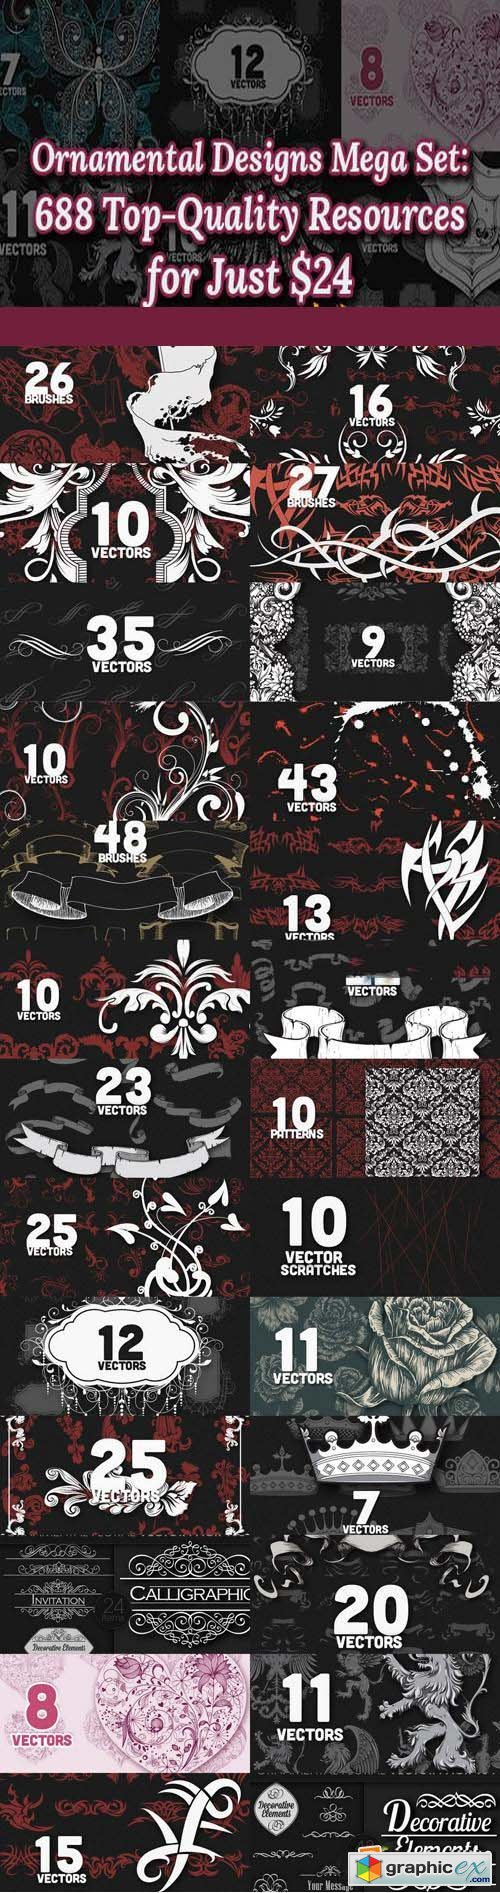 Designious - Ornamental Designs Mega Set